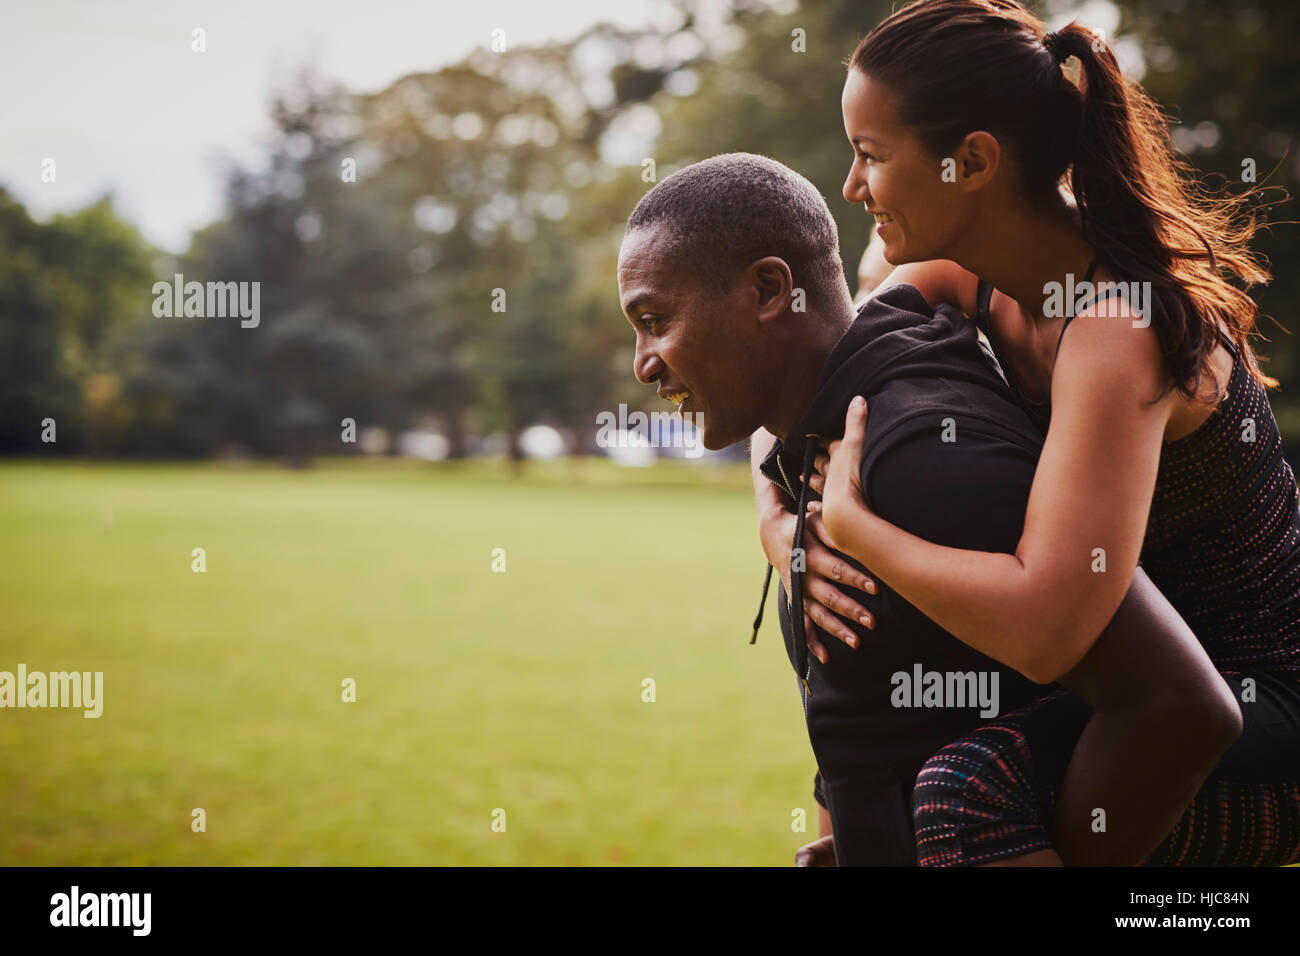 Man and woman having fun training in park, giving piggy back - Stock Image